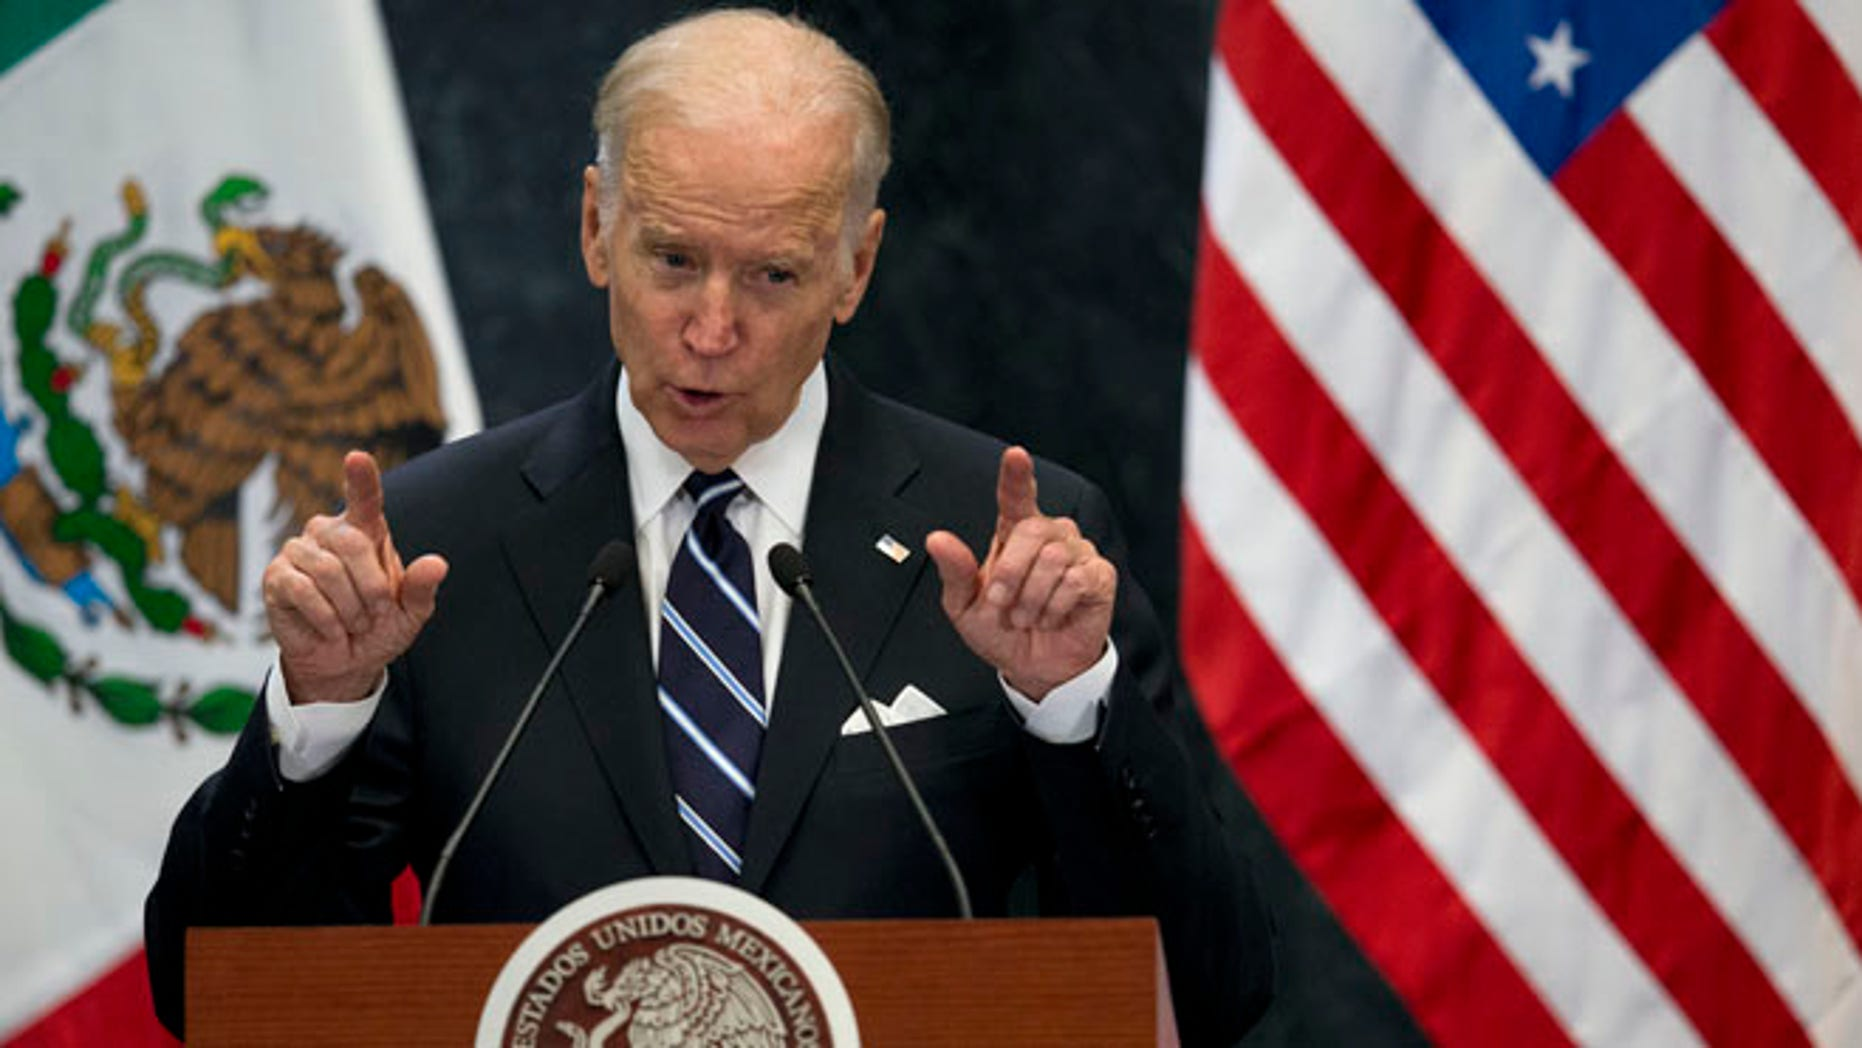 U.S. Vice President Joe Biden speaks during a joint message to the press with Mexican President Enrique Pena Nieto, in Mexico City, Thursday, Feb. 25, 2016. Biden led a high-level U.S. delegation for annual talks on boosting economic and commercial ties with Mexico, one of the United States' top trading partners. (AP Photo/Rebecca Blackwell)